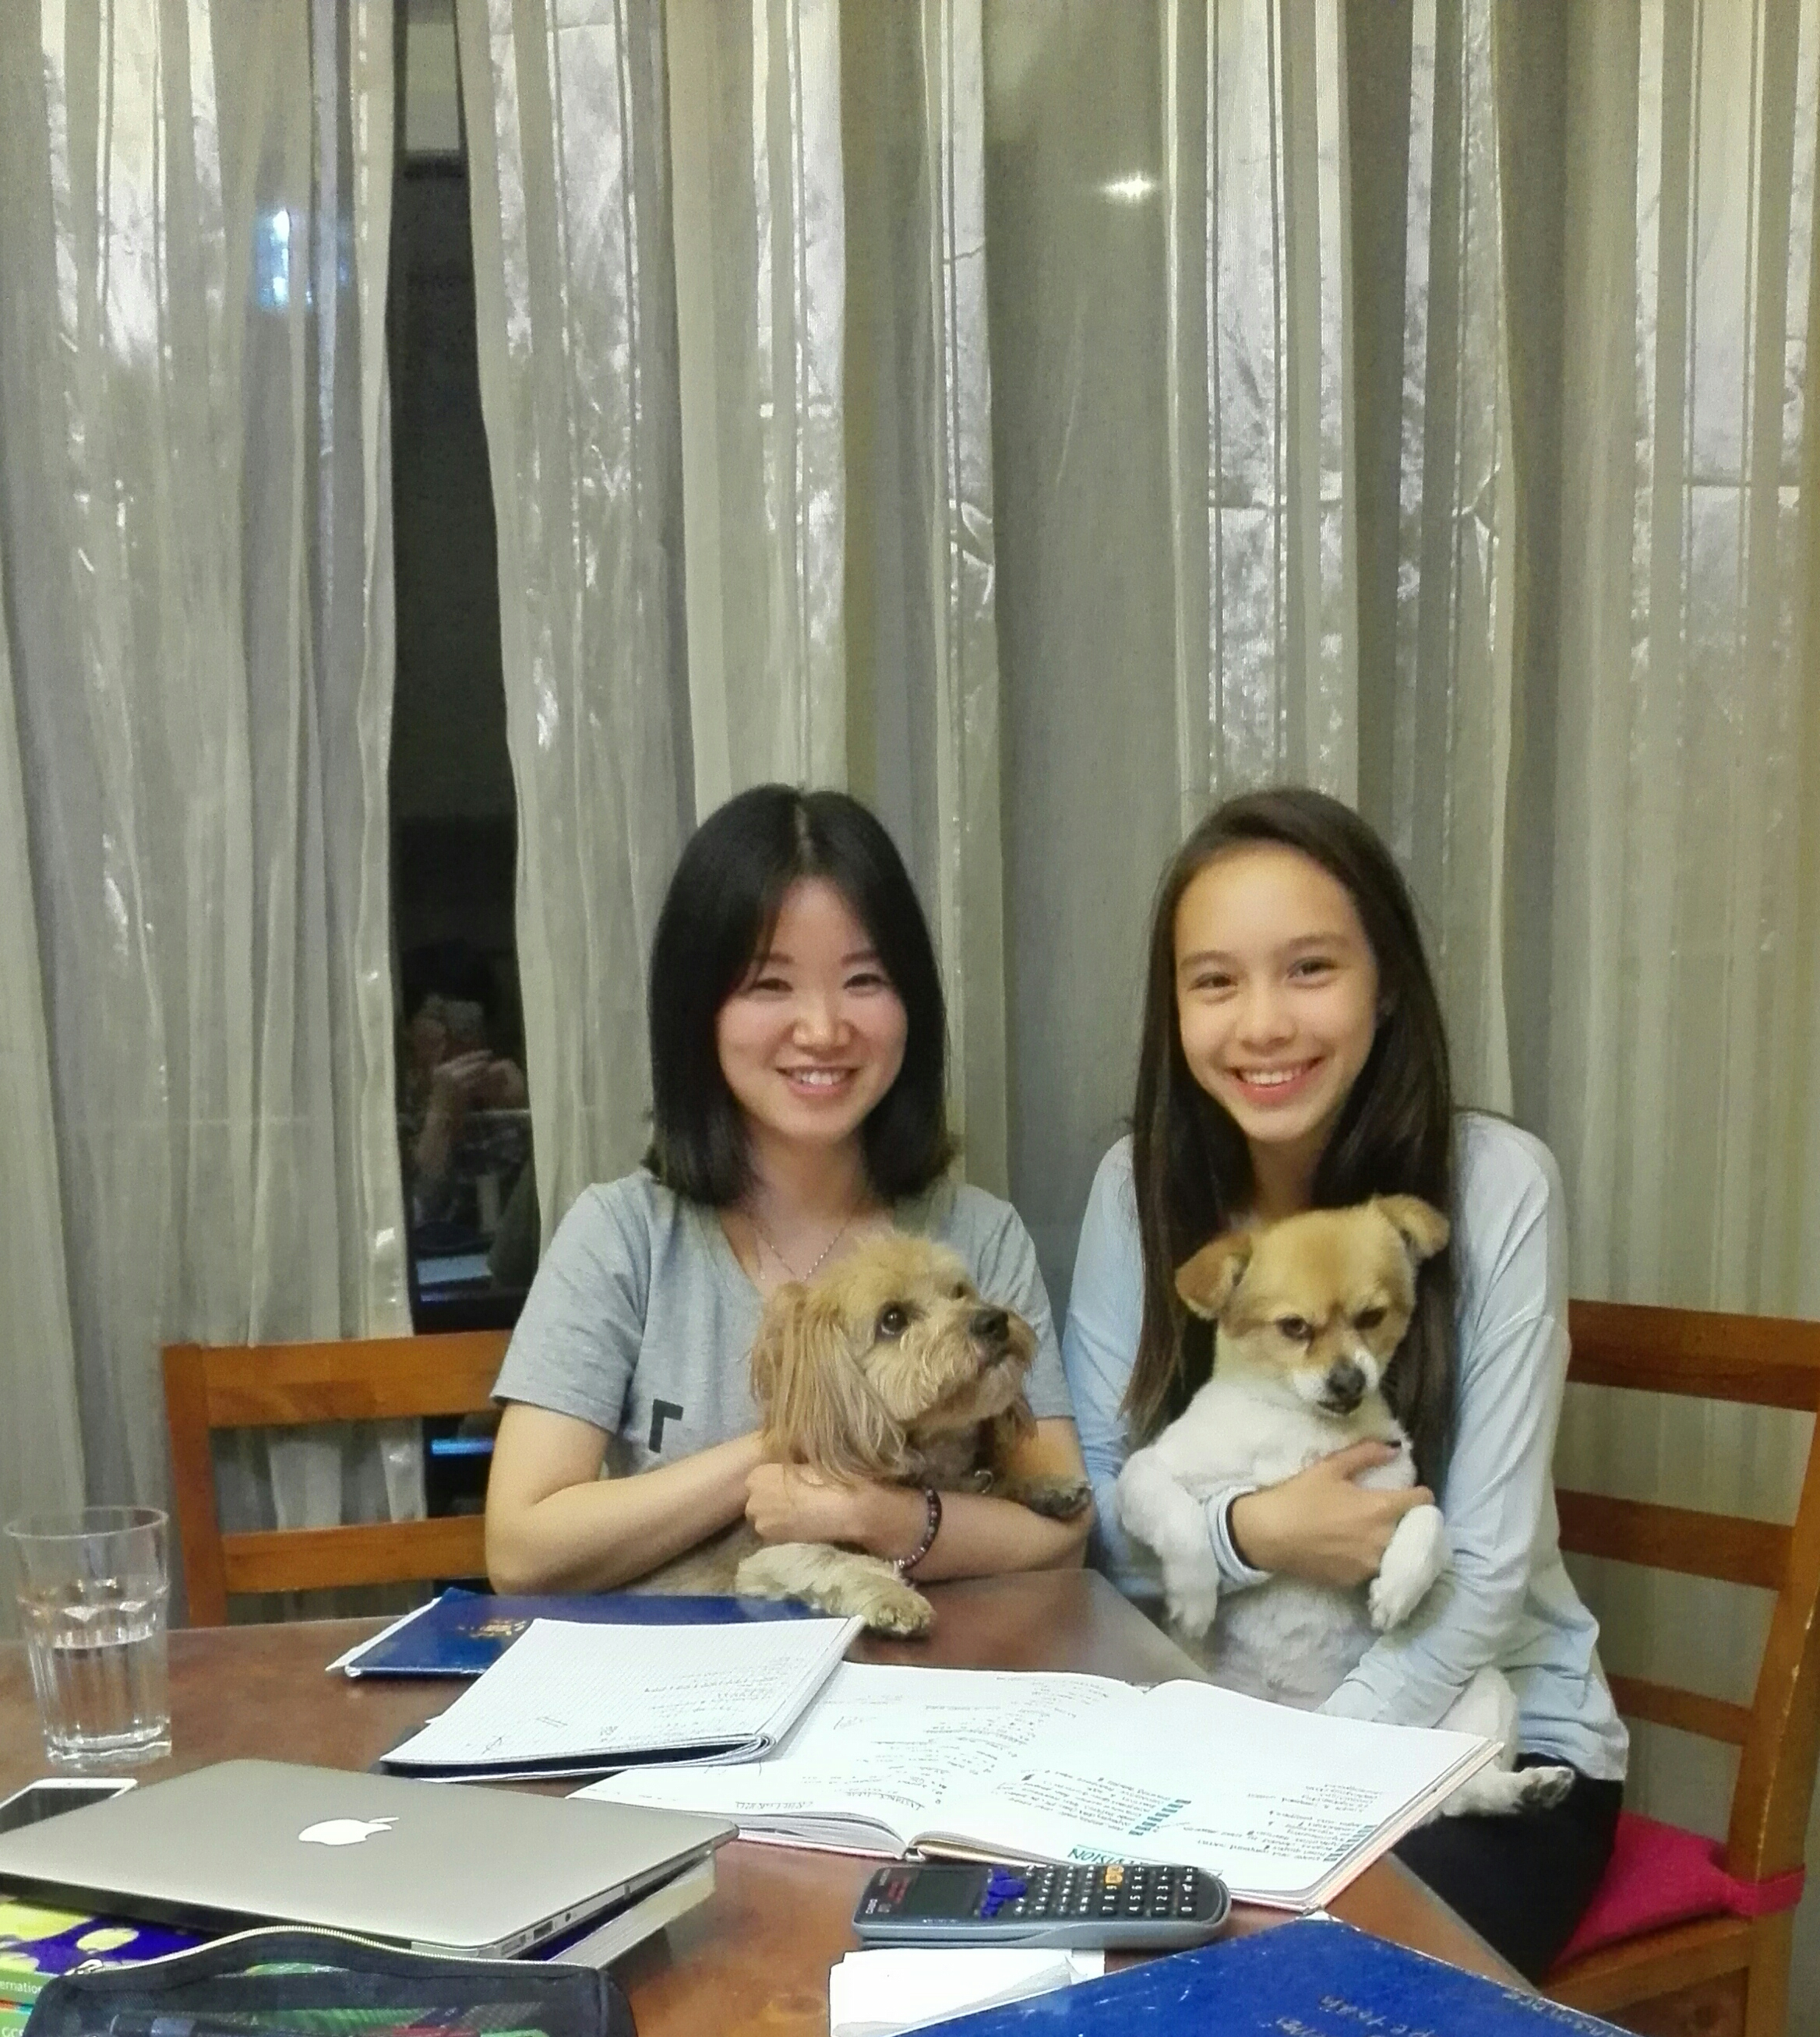 Luna from WISS with Tutor Cathy